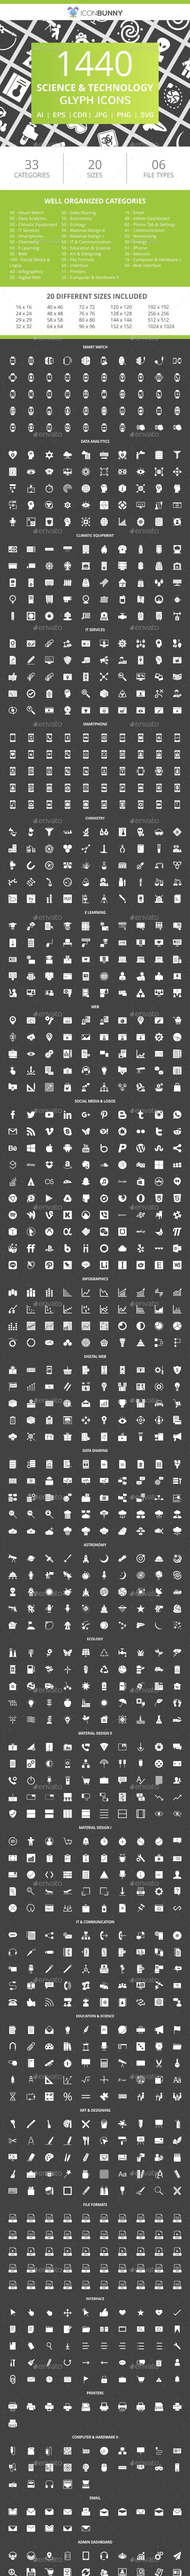 1440 Science & Technology Glyph Inverted Icons - Icons